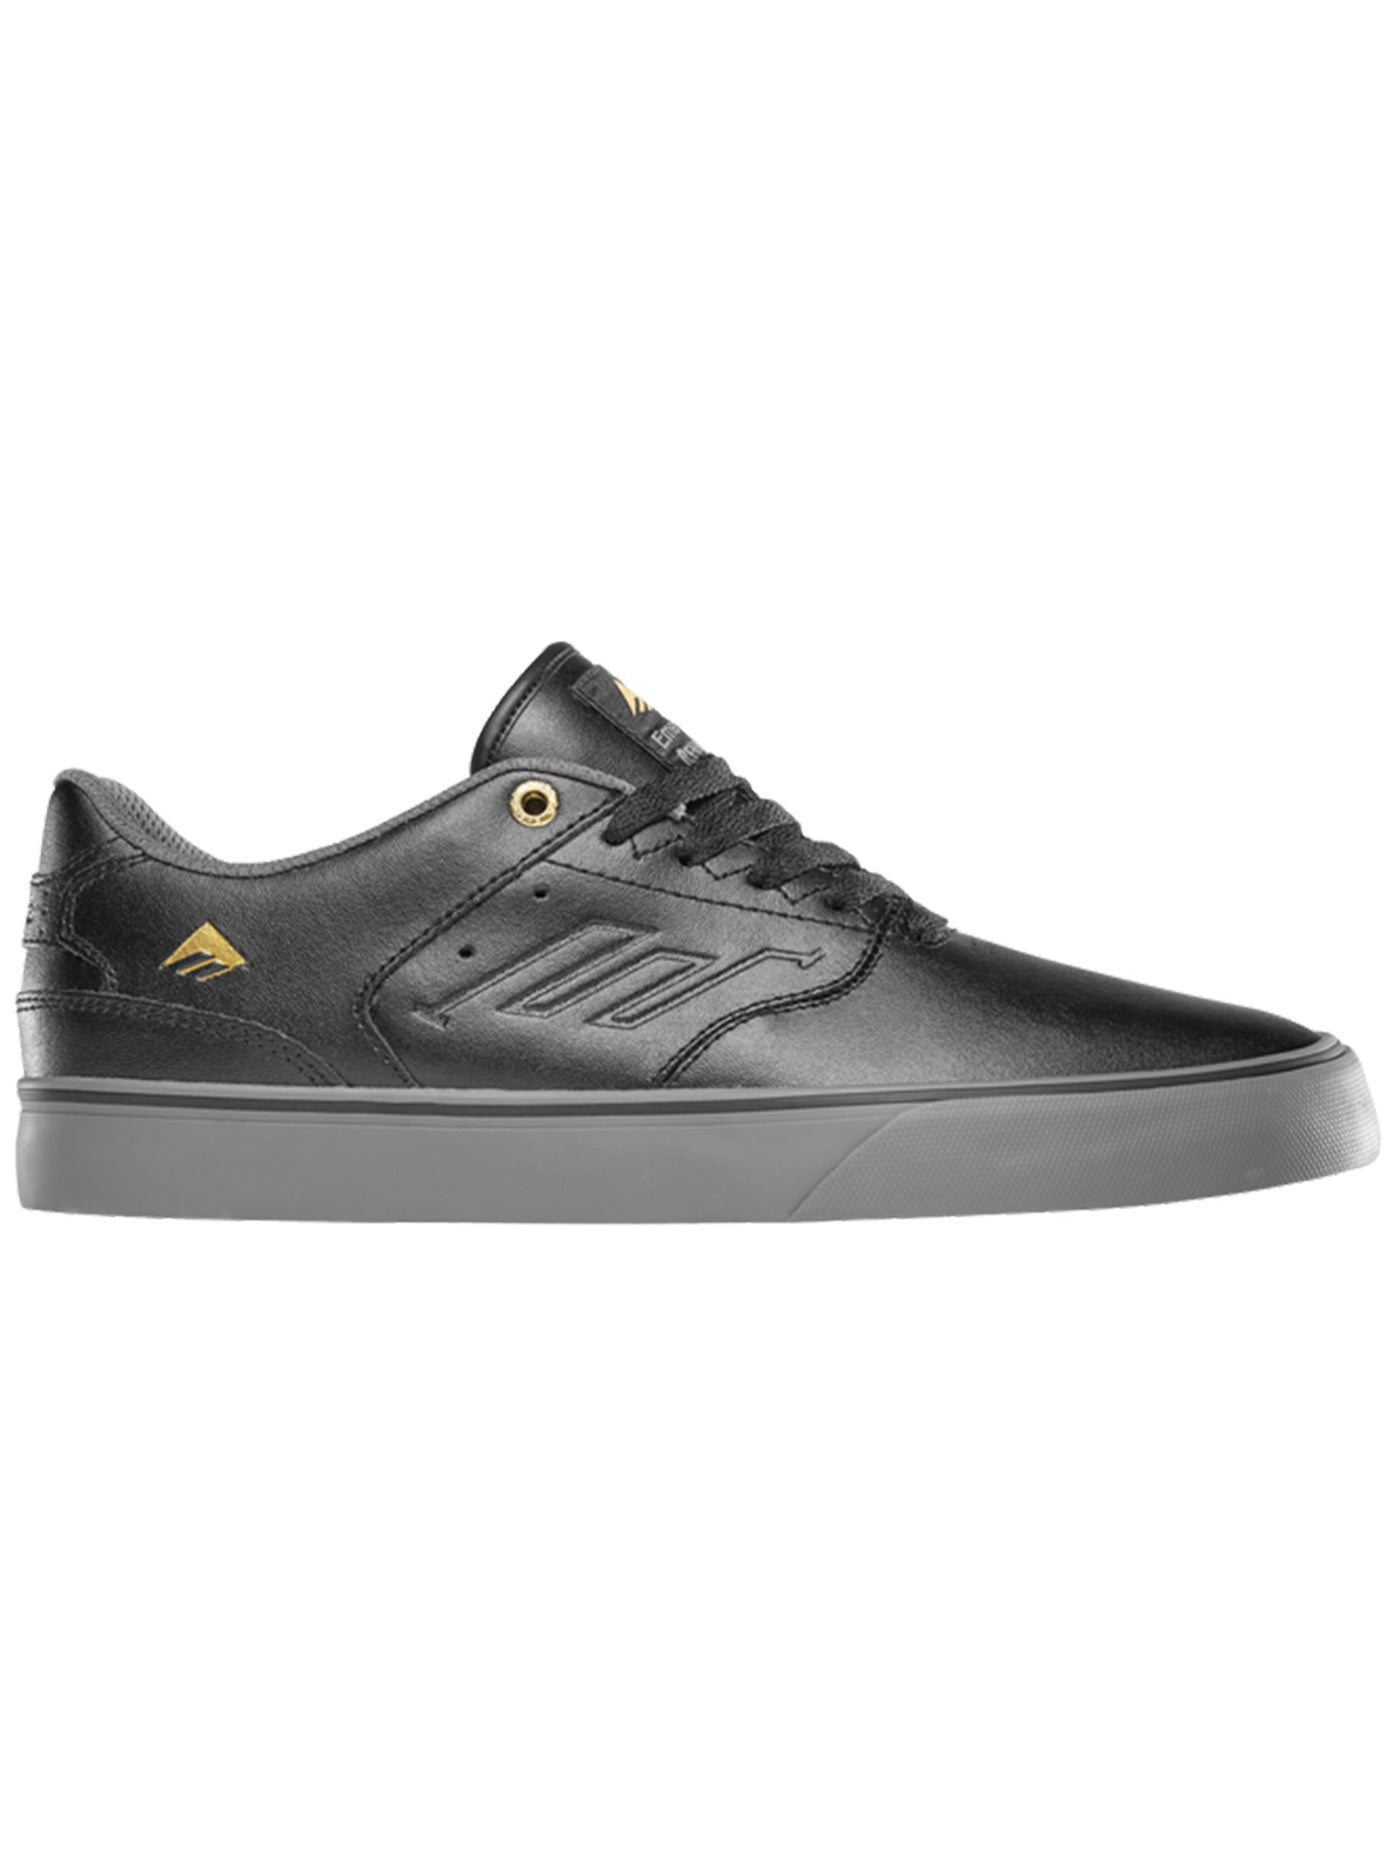 BLACK/GOLD/GREY (971)